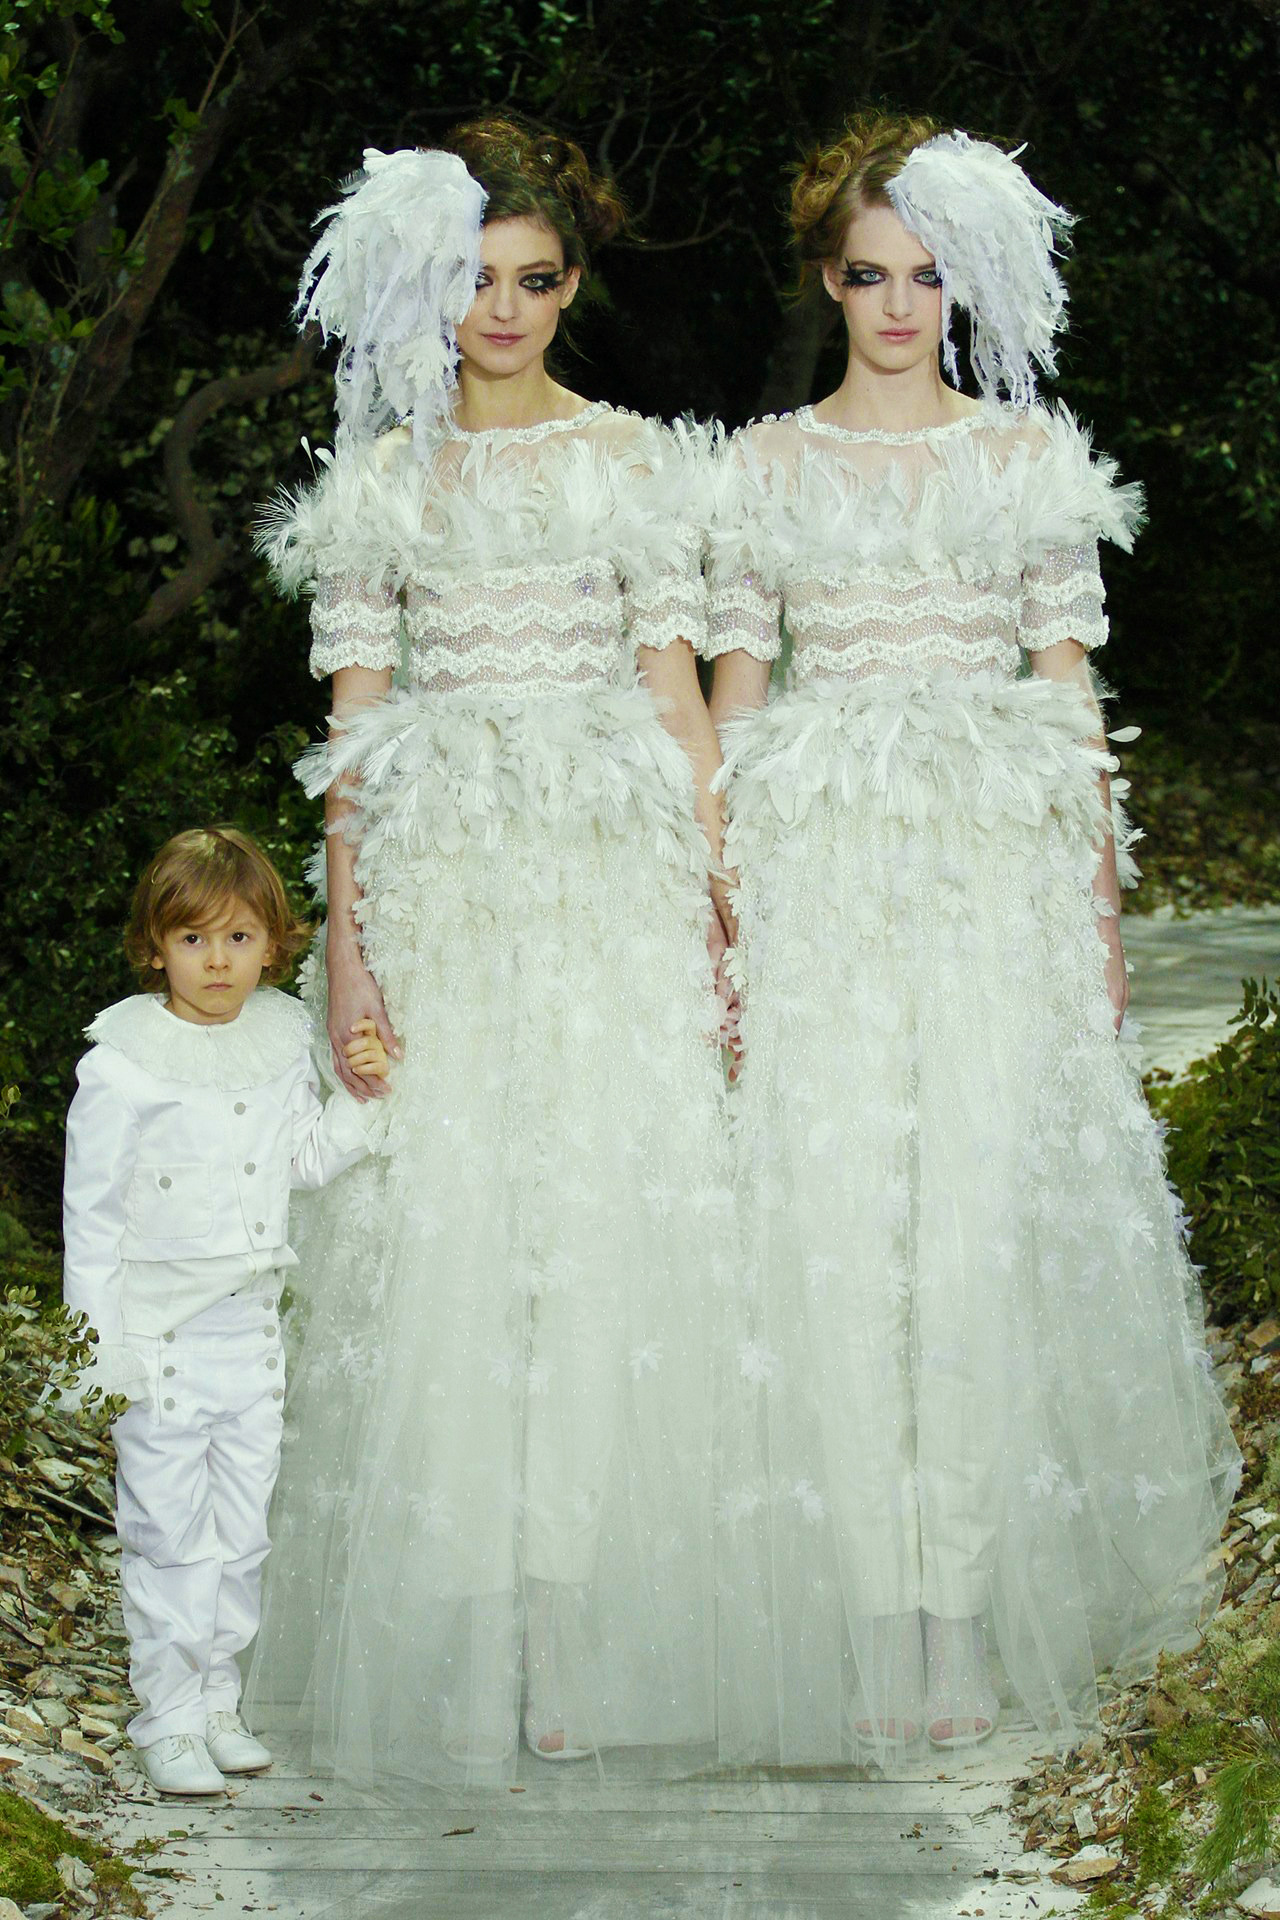 Hudson Kroenig, Kati Nescher, and Ashleigh Good for Chanel Haute Couture Spring/Summer 2013